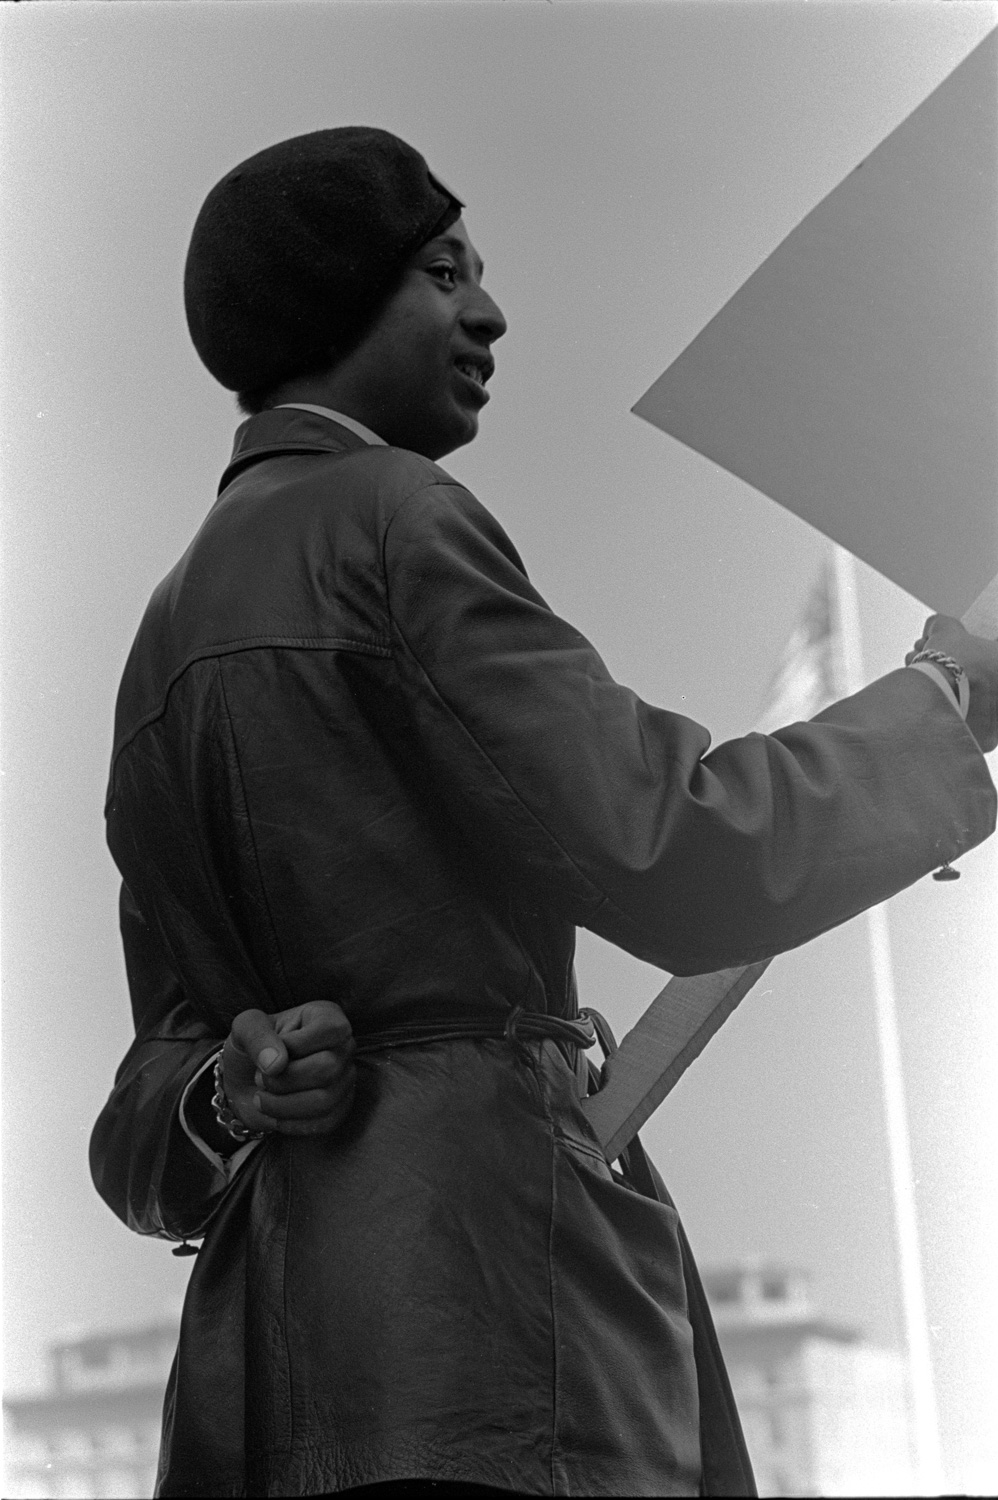 Bobby Hutton , a younger member of the Black Panther's Oakland chapter, April 1968. (He was killed in a police shoot-out just days later.)